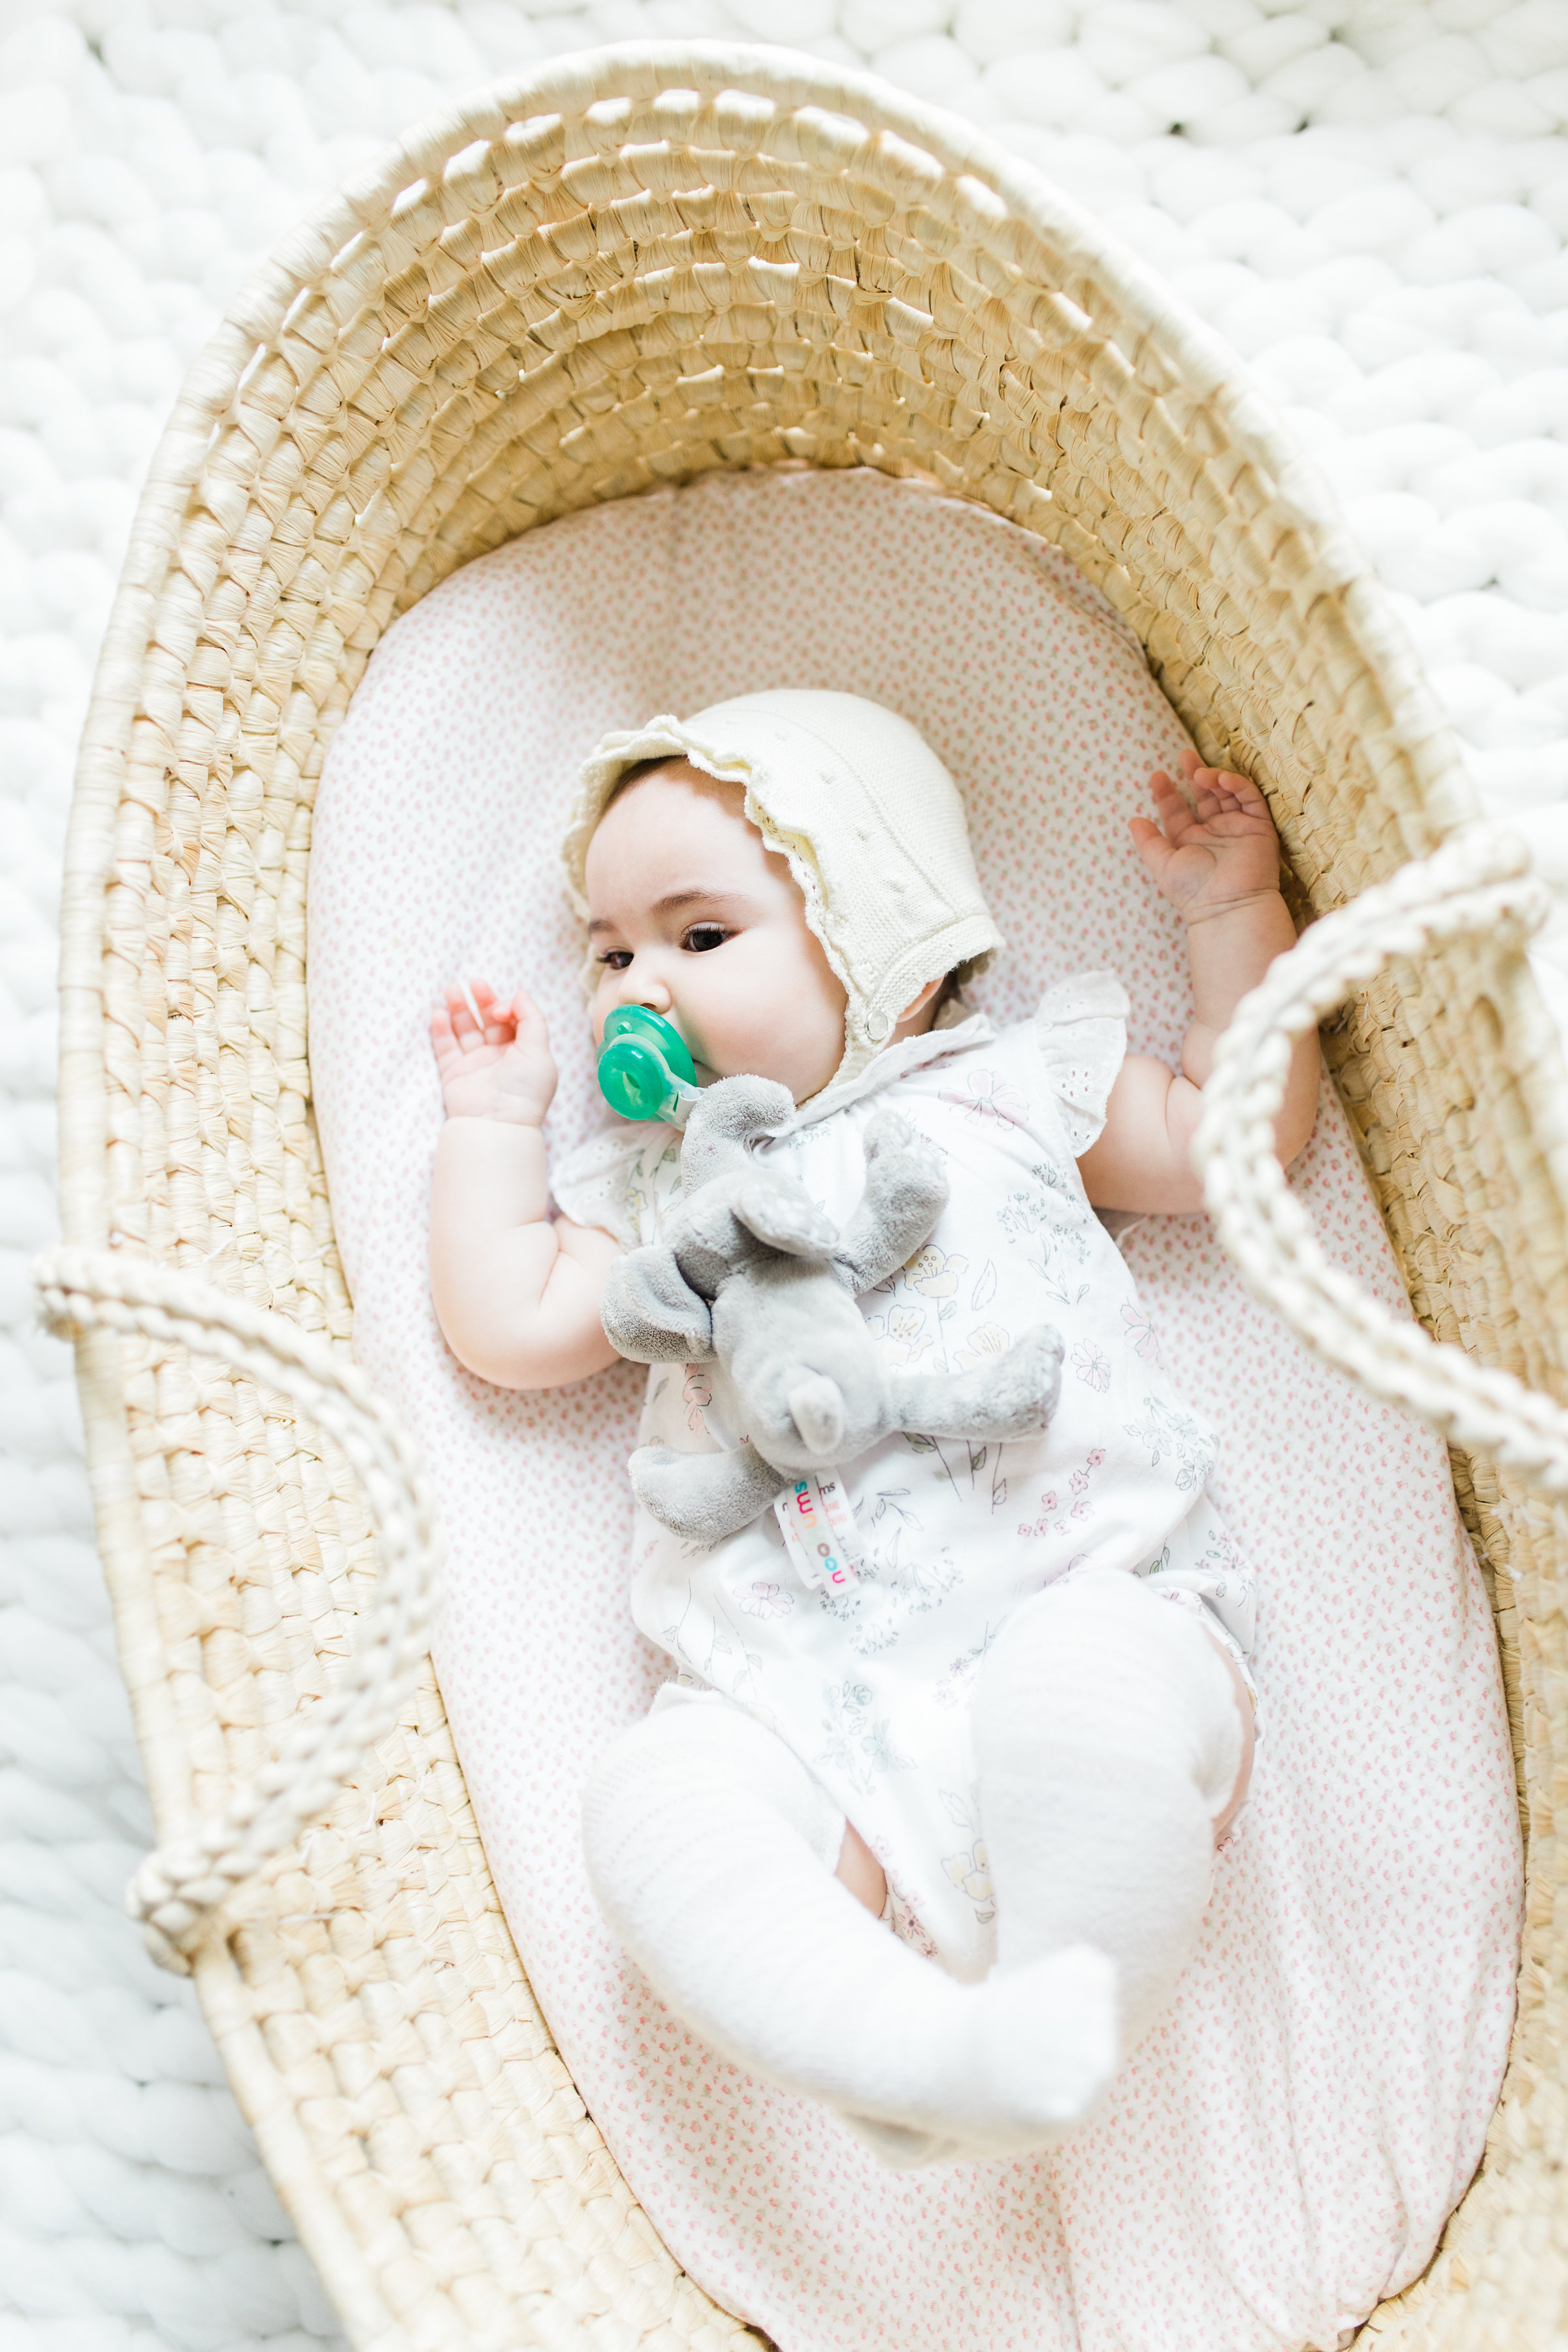 Mom blogger Lexi of Glitter, Inc. shares what baby items were must-haves and essentials for baby's first year . Click through for the details. #babyregistry #newbaby #babyessentials #babymusthaves | glitterinc.com | @glitterinc